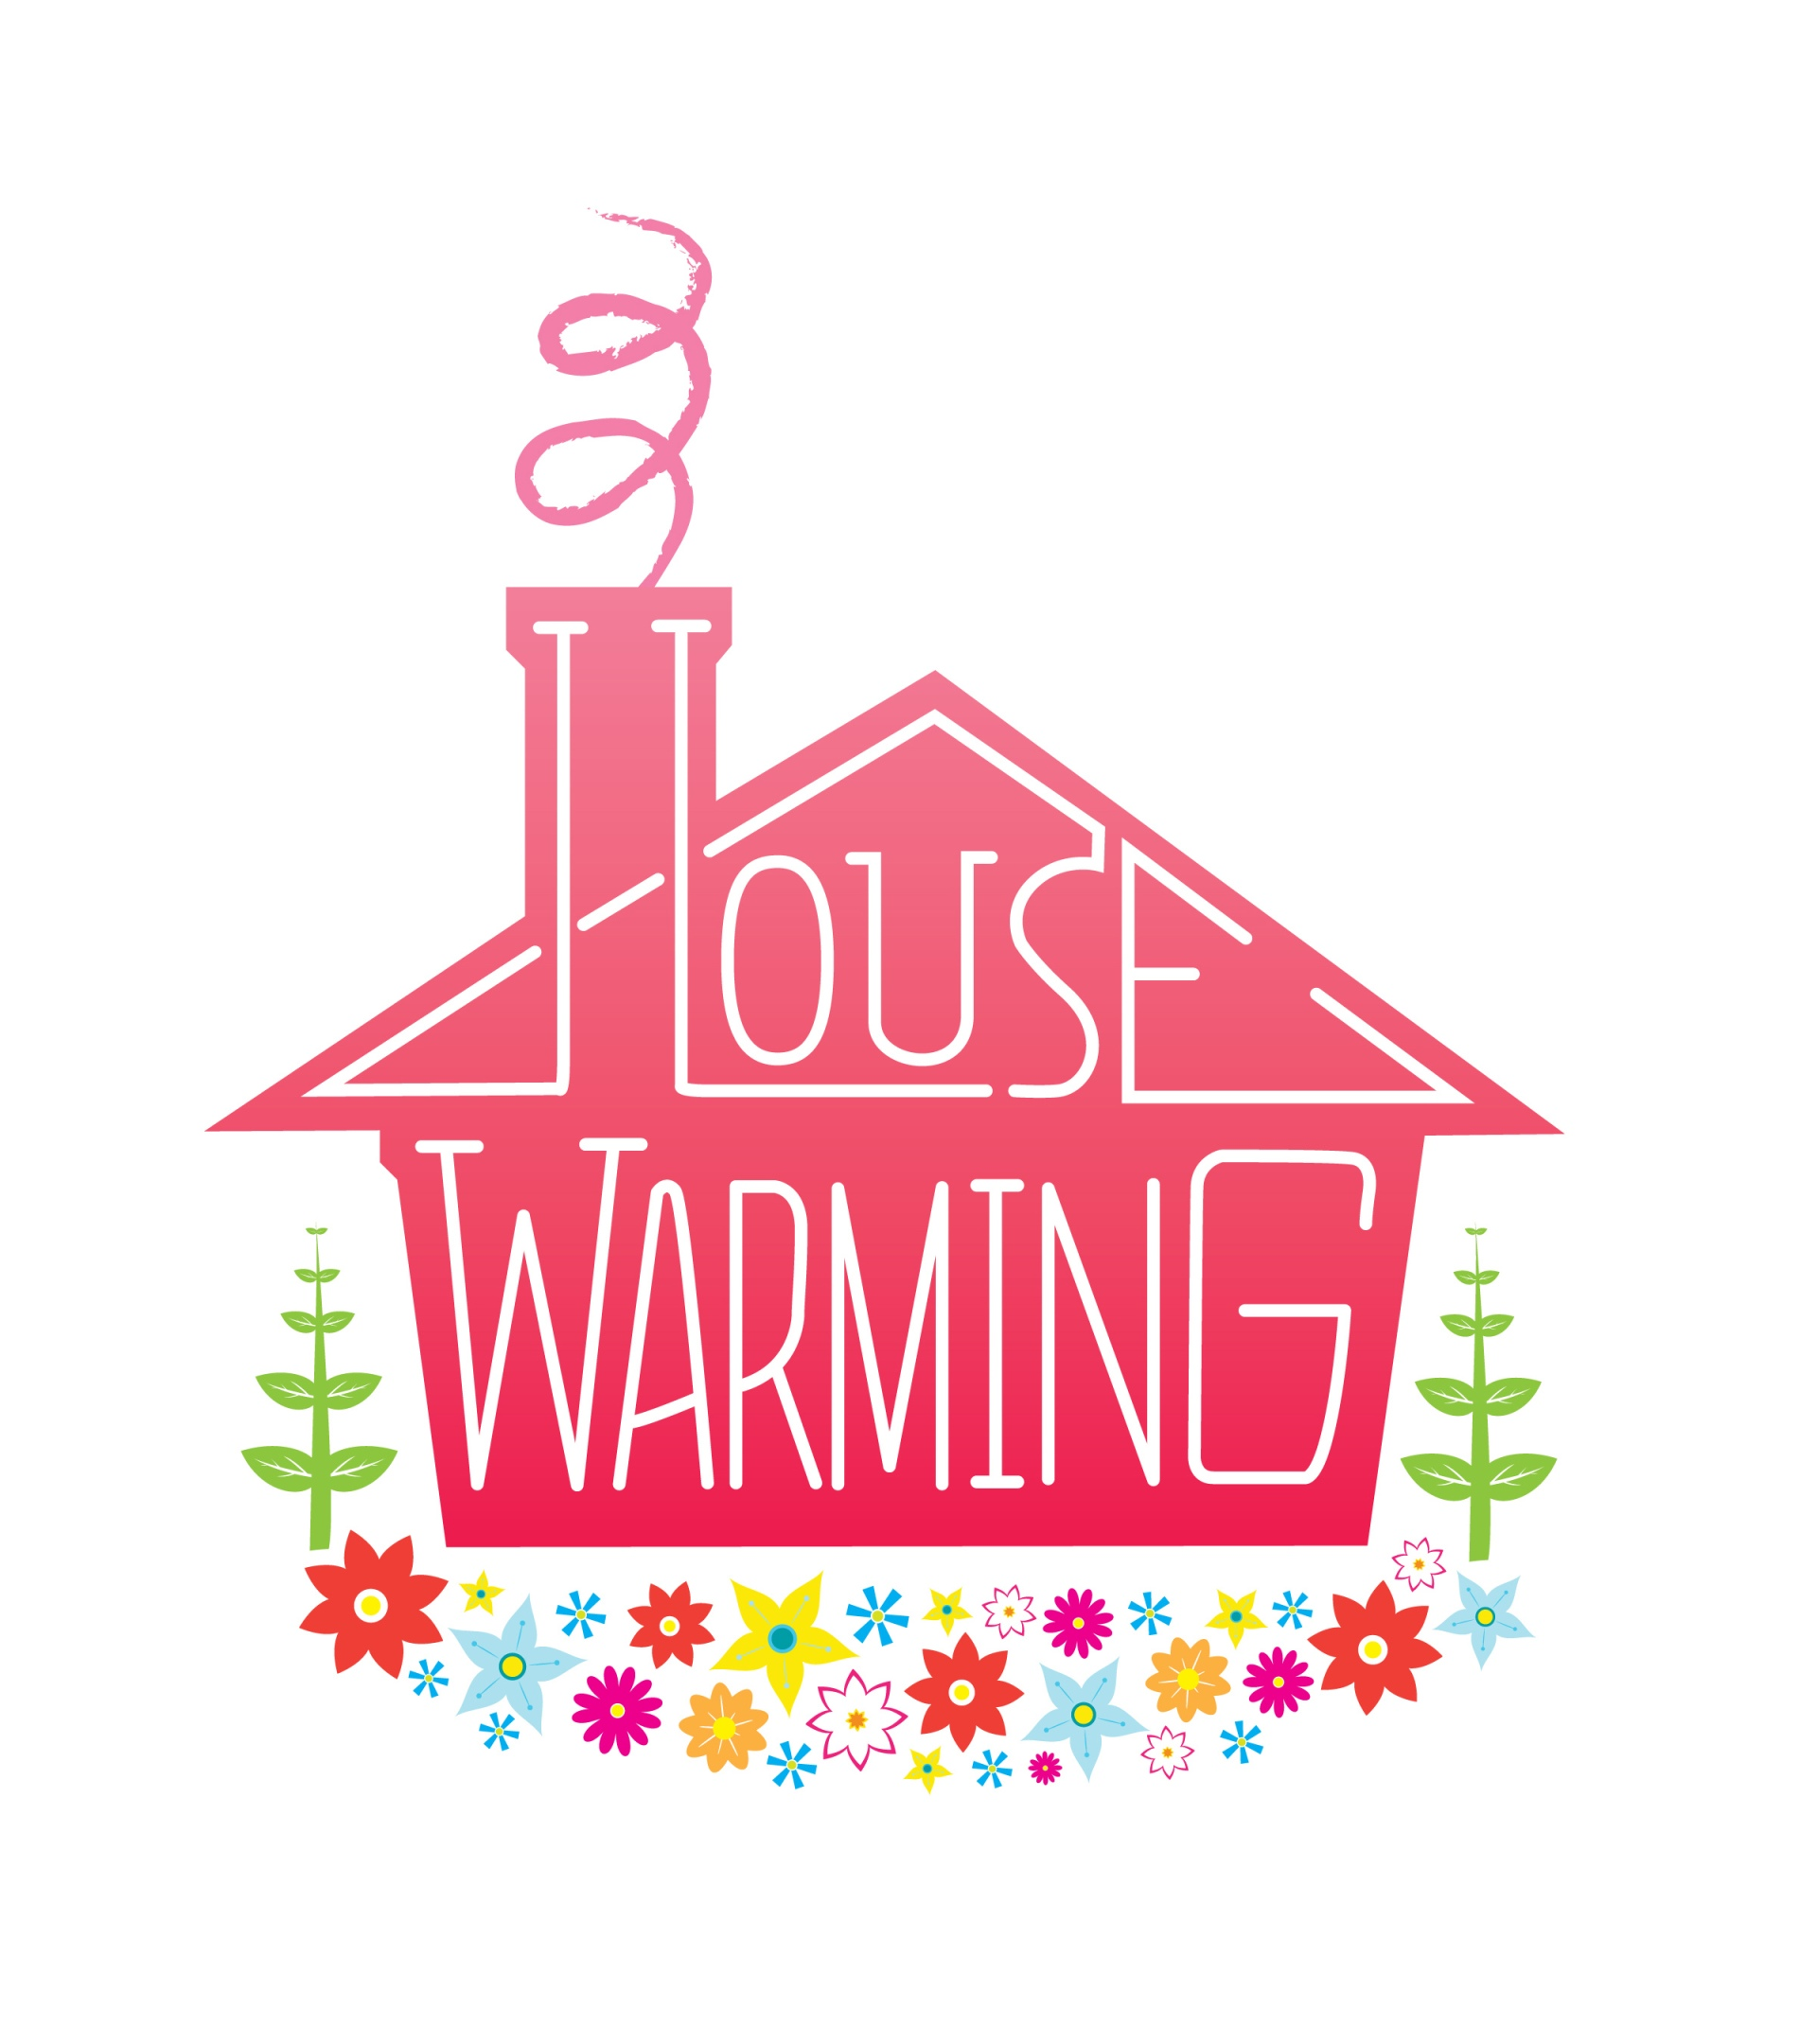 House Warming Logo